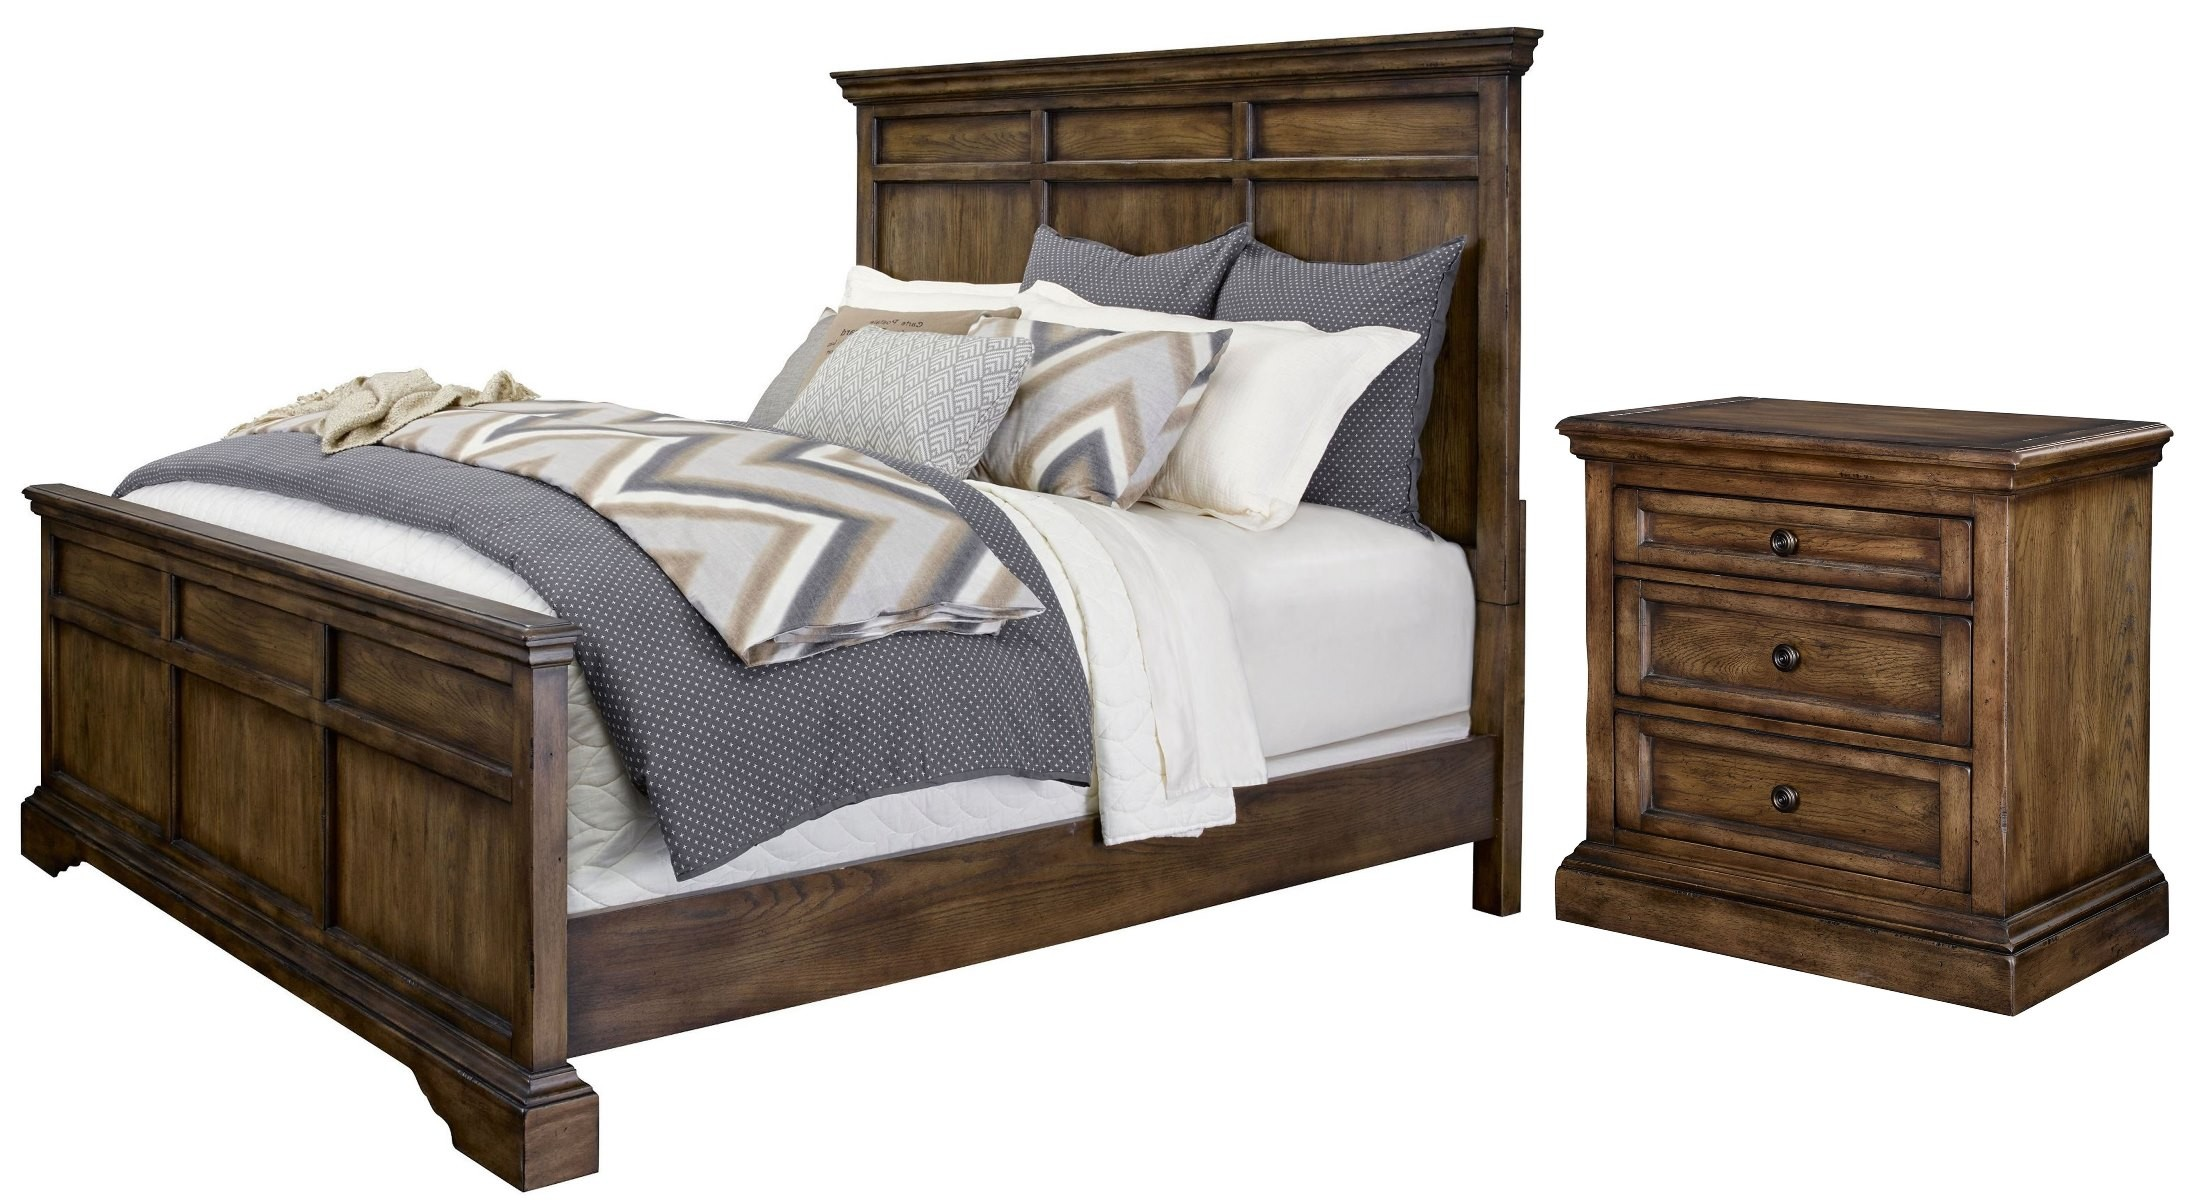 Square Bedroom Furniture ~ Larimer square panel bedroom set  broyhill